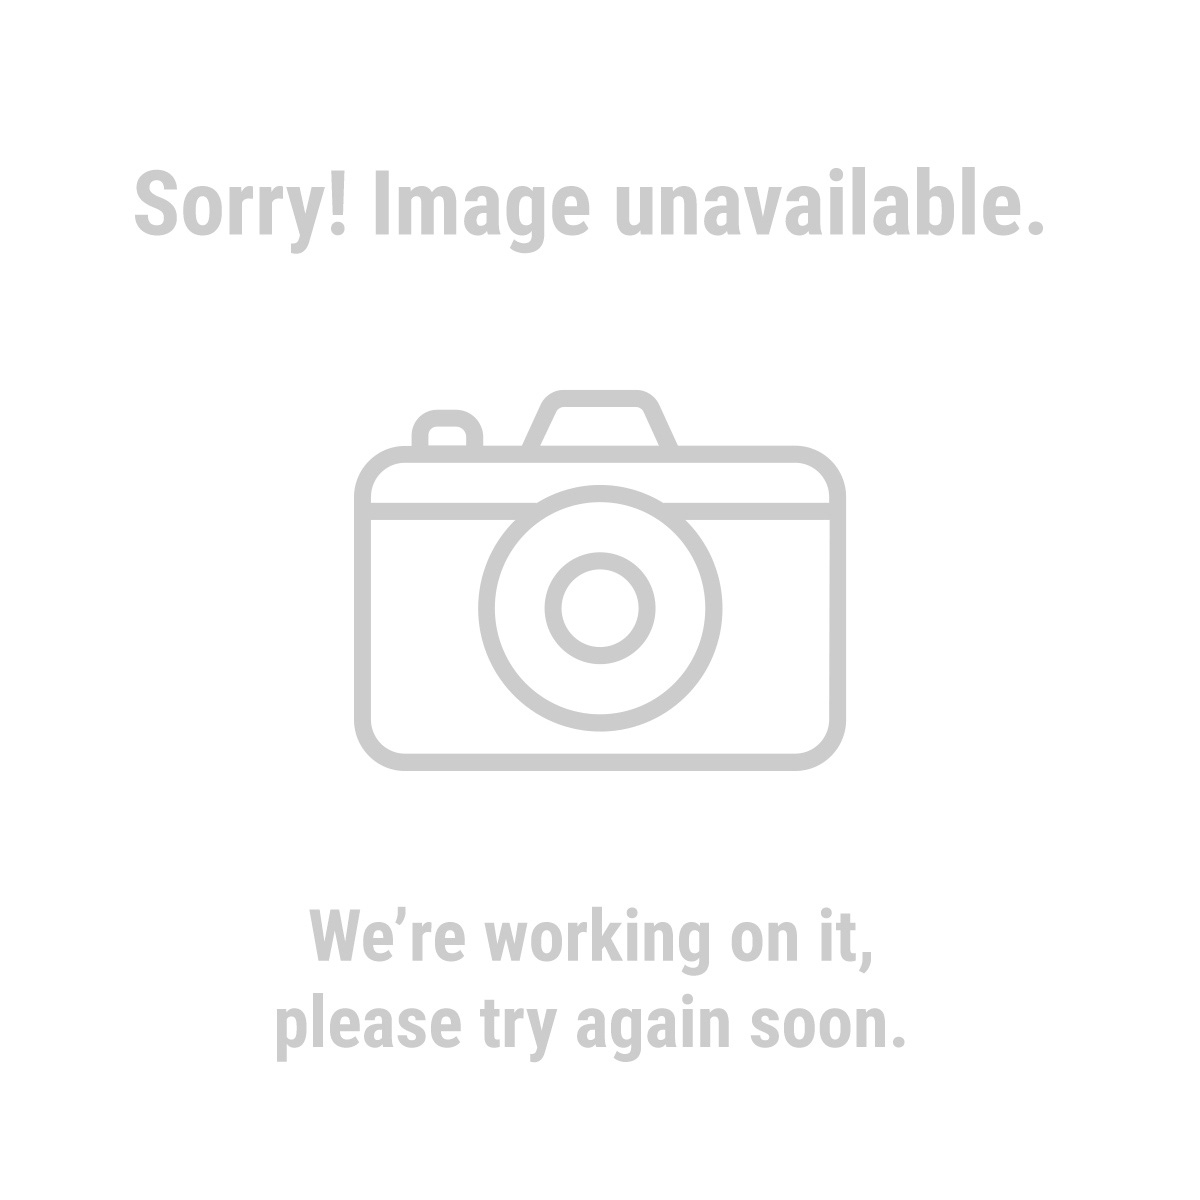 Pittsburgh 61344 12 Piece Cushion Grip Screwdriver Set